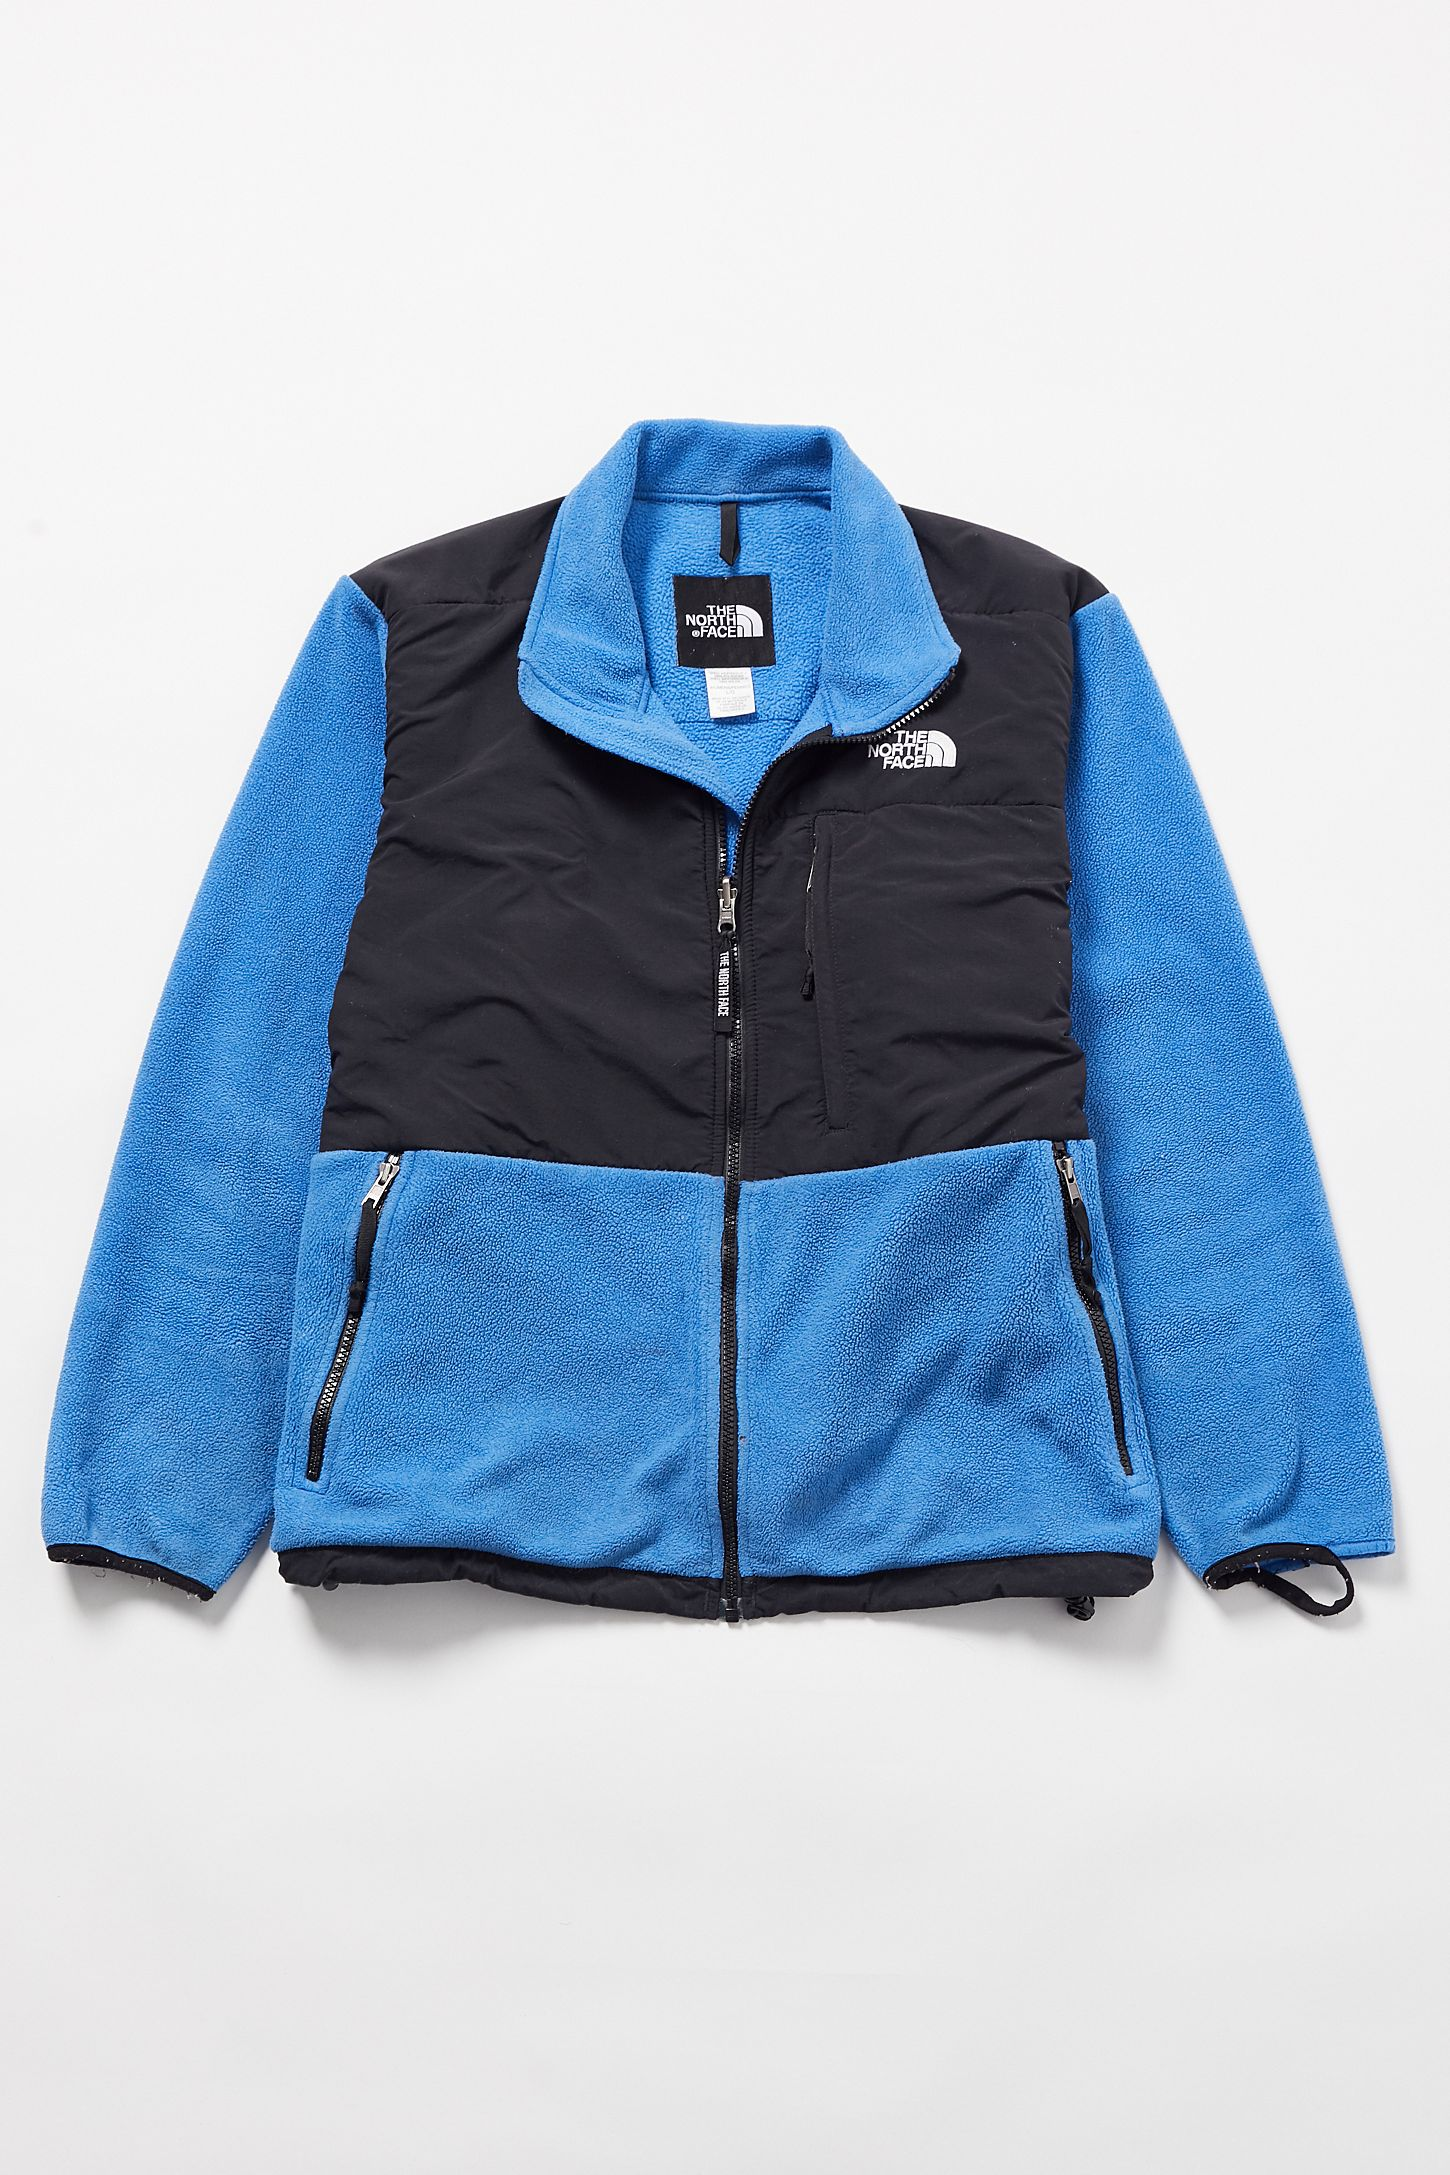 Black Blue The Outfitters Jacket Urban Fleece Face North Vintage IBvdtxRn 5c9aced71de